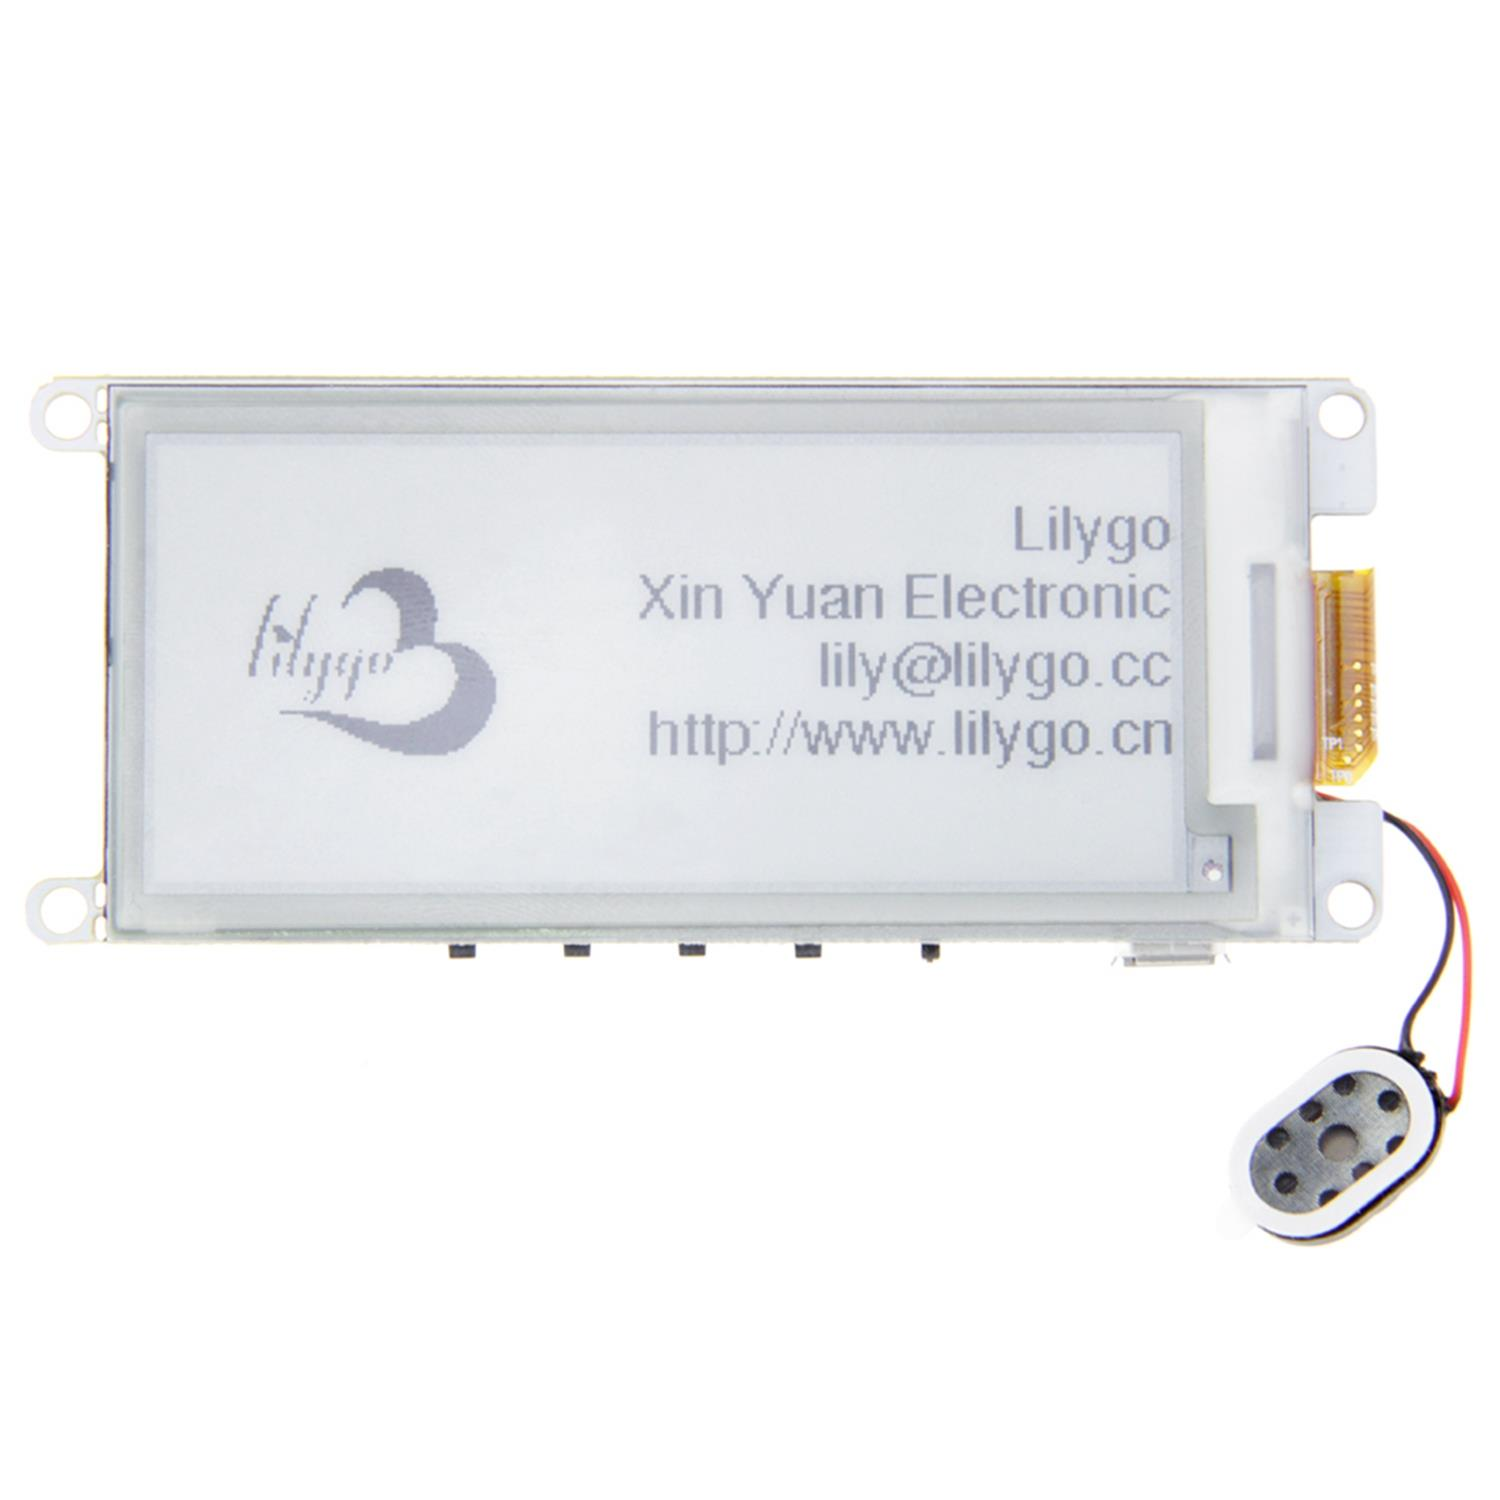 Ttgo T5 V2.2 Esp32 2.9 Inch Epaper Display Module E-Ink Speakers Wifi Bluetooth Development Board